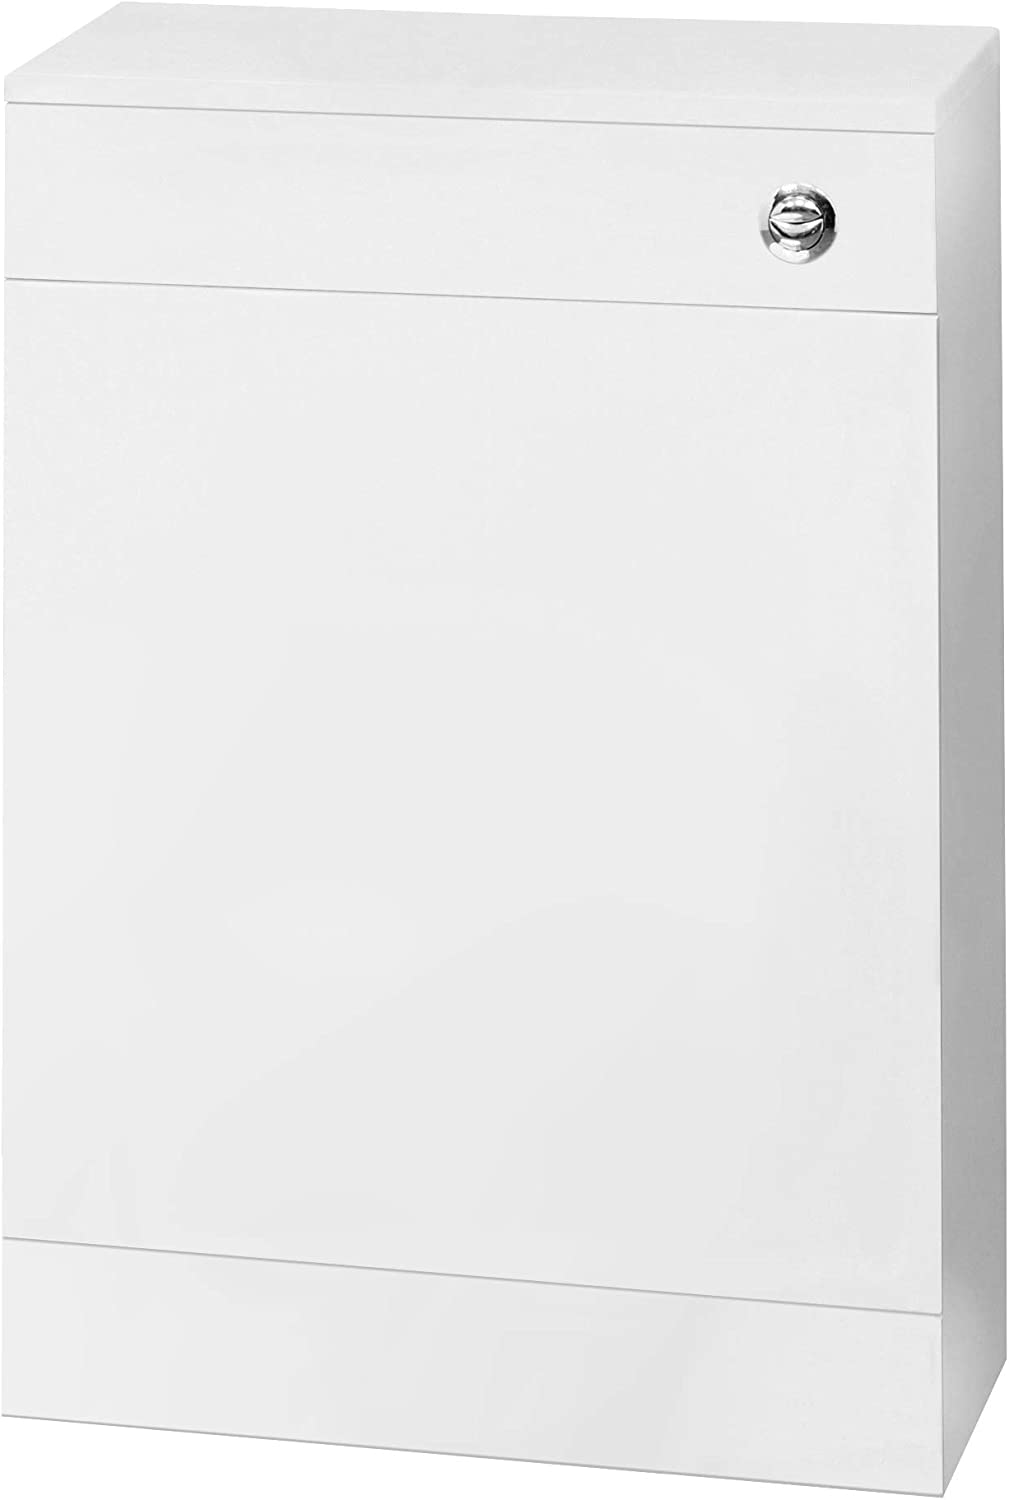 Nuie NVS142 Mayford | Modern Bathroom Floor Standing Cloakroom WC Unit with Free Concealed Cistern (Excludes Pan), 500mm x 770mm, Gloss White, 500mm200mm